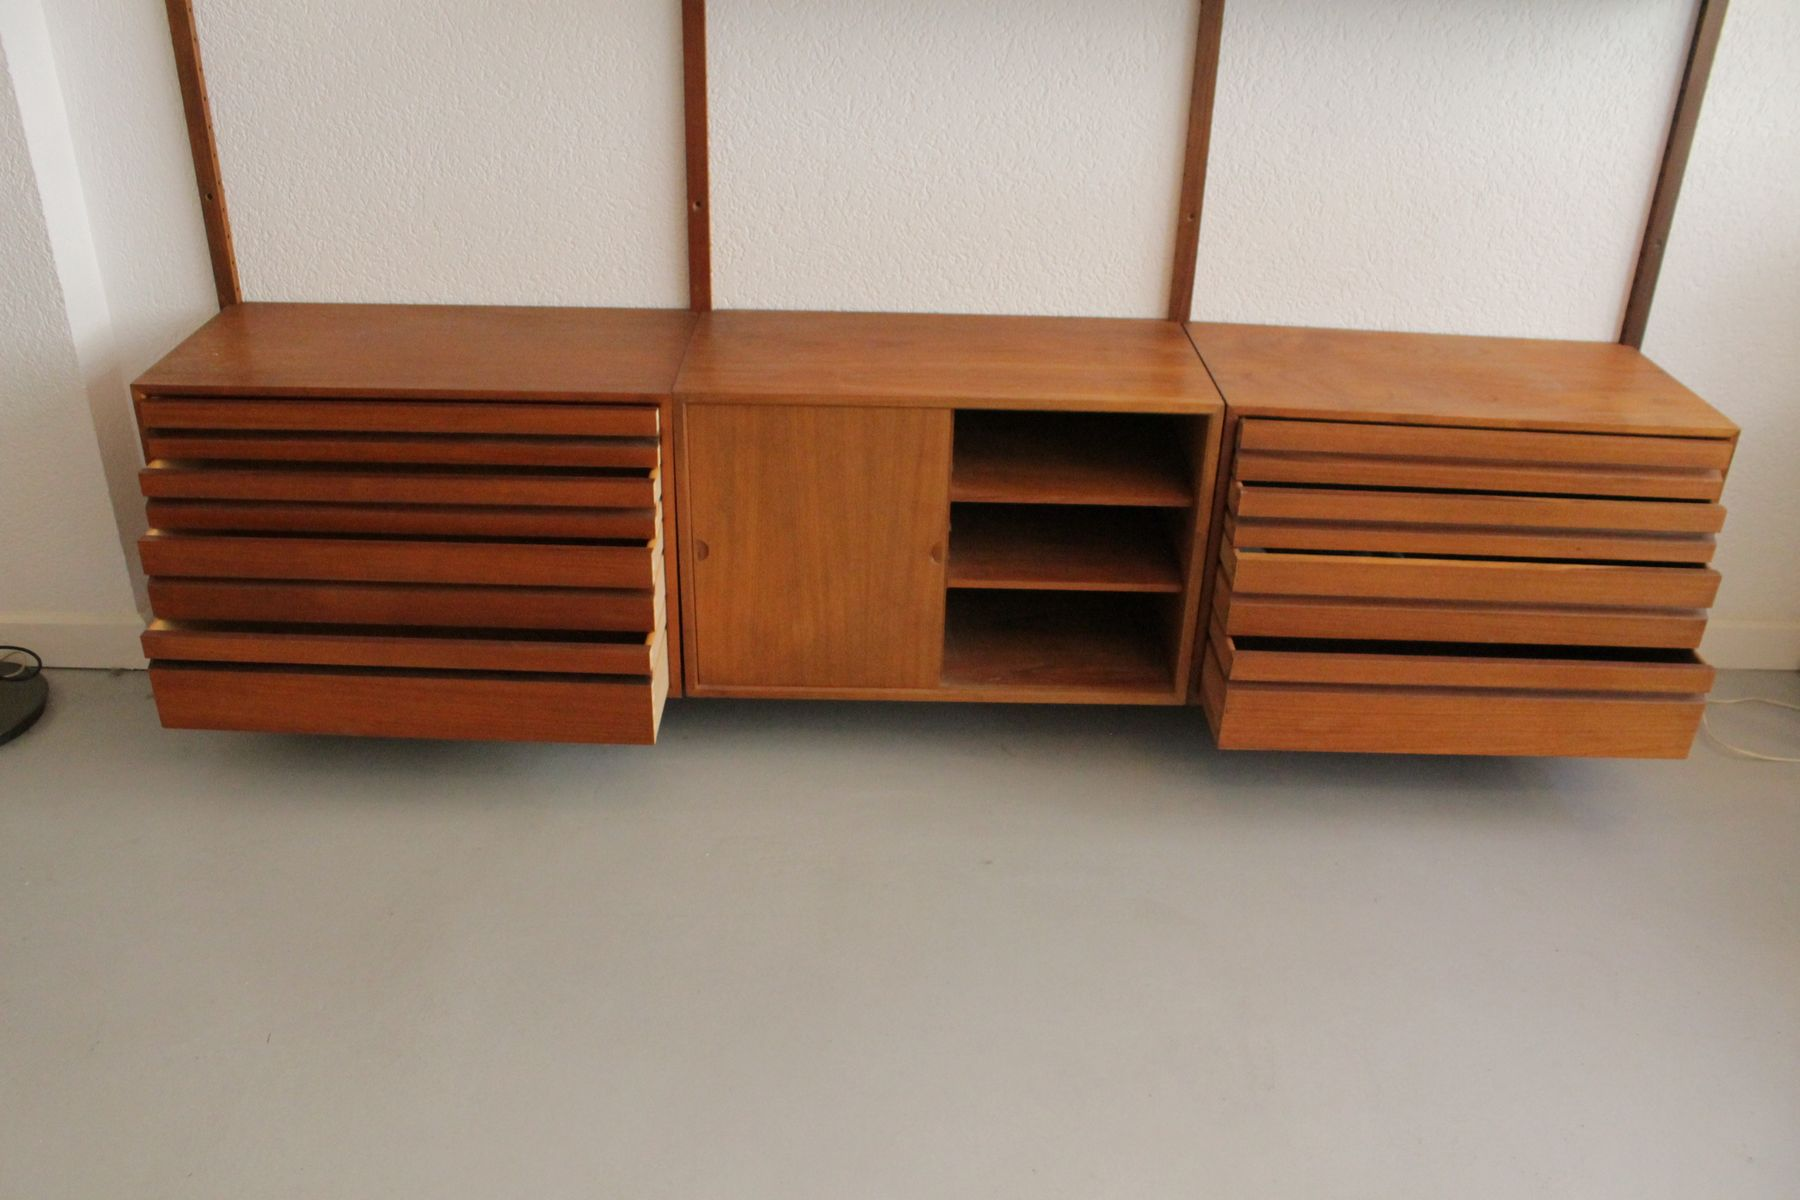 Teak Floating Wall Unit by Poul Cadovius for Cado 1960s